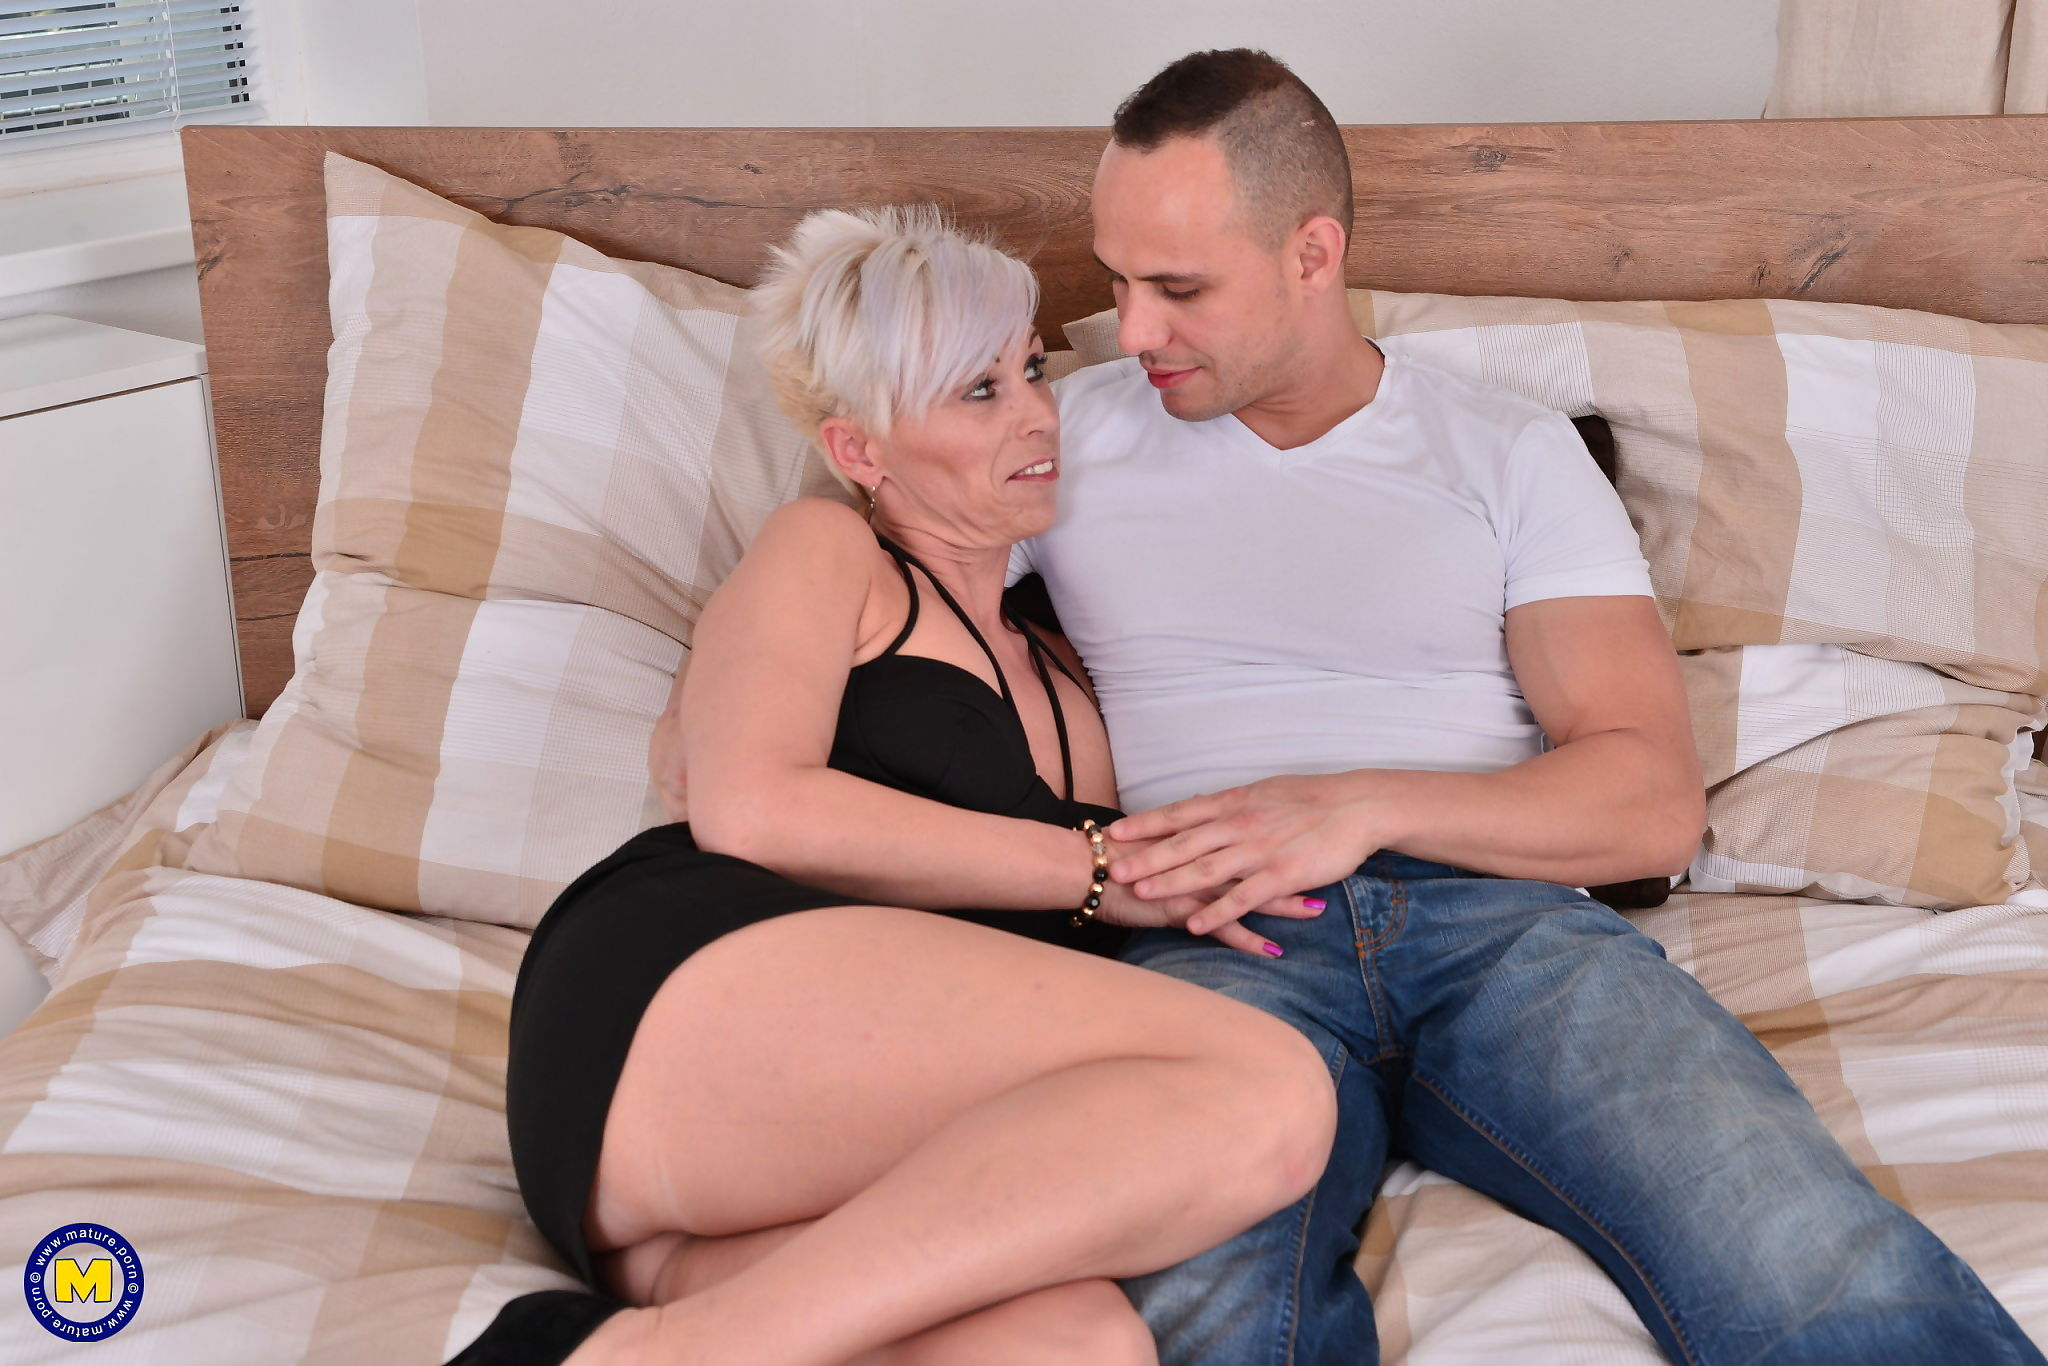 Horny housewife kathy white fooling around with her toy boy - part 2412